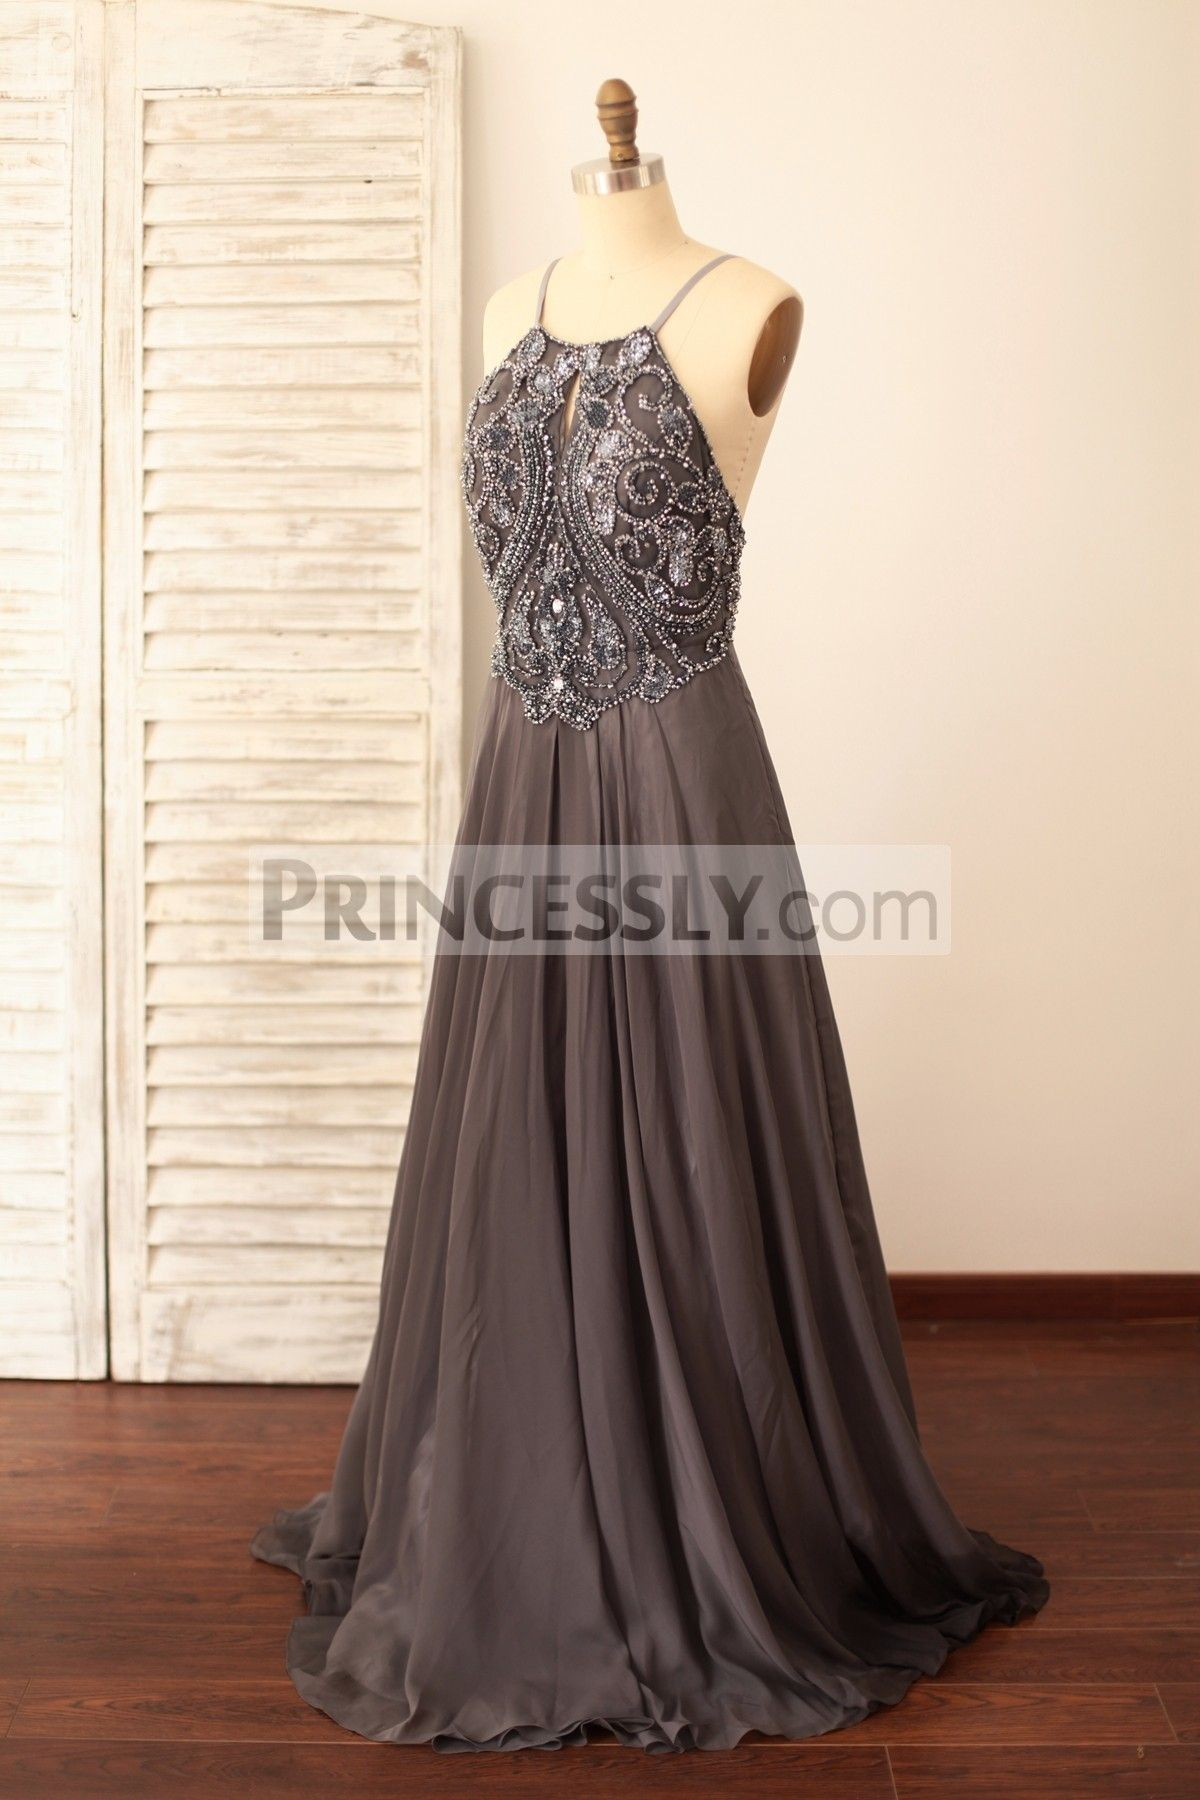 Spaghetti Straps Gray Chiffon Backless Beaded Prom Dress in